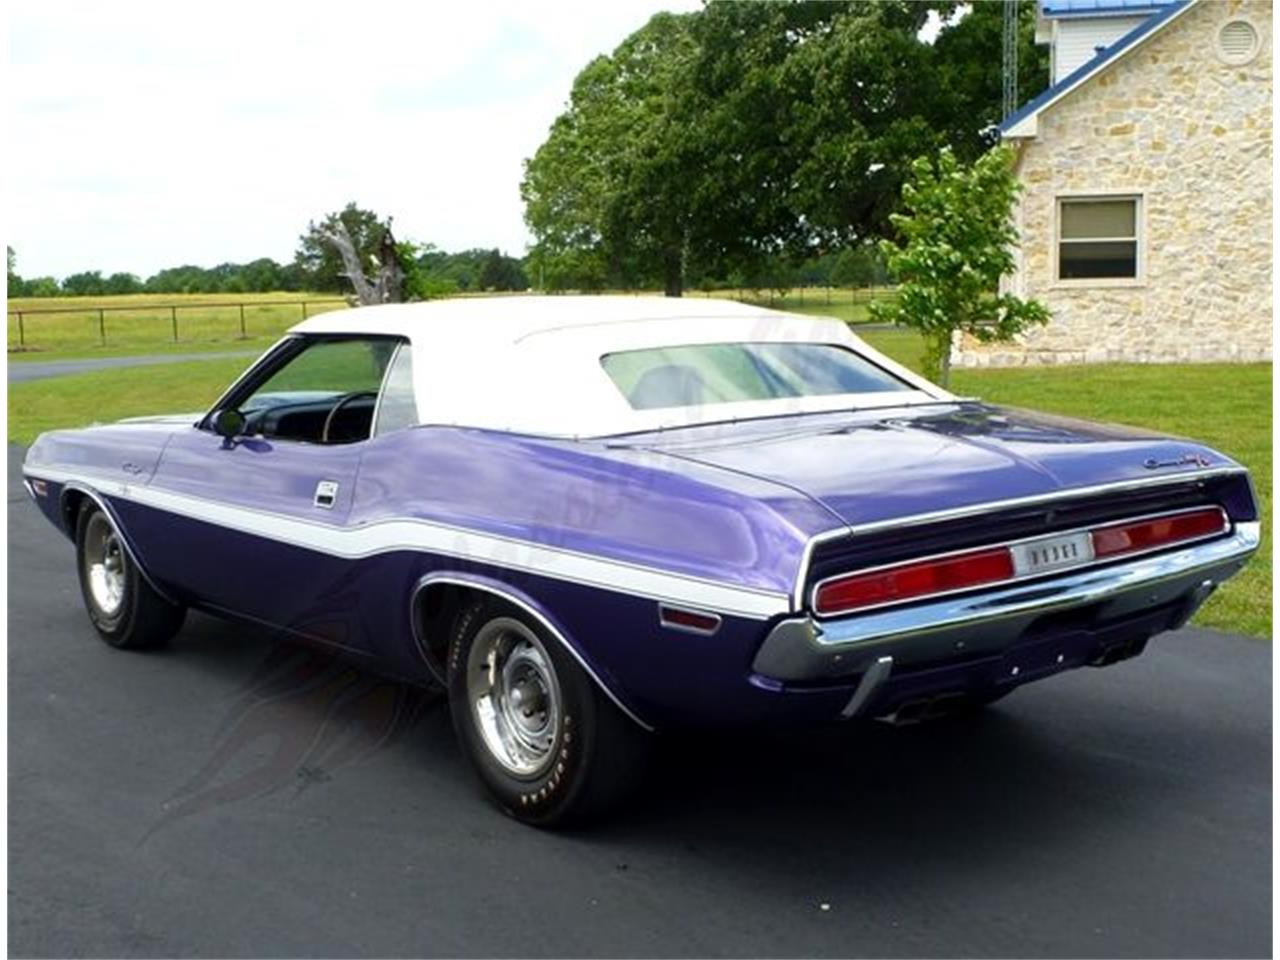 Large Picture of Classic 1970 Challenger R/T located in Texas - $149,500.00 - QKBE